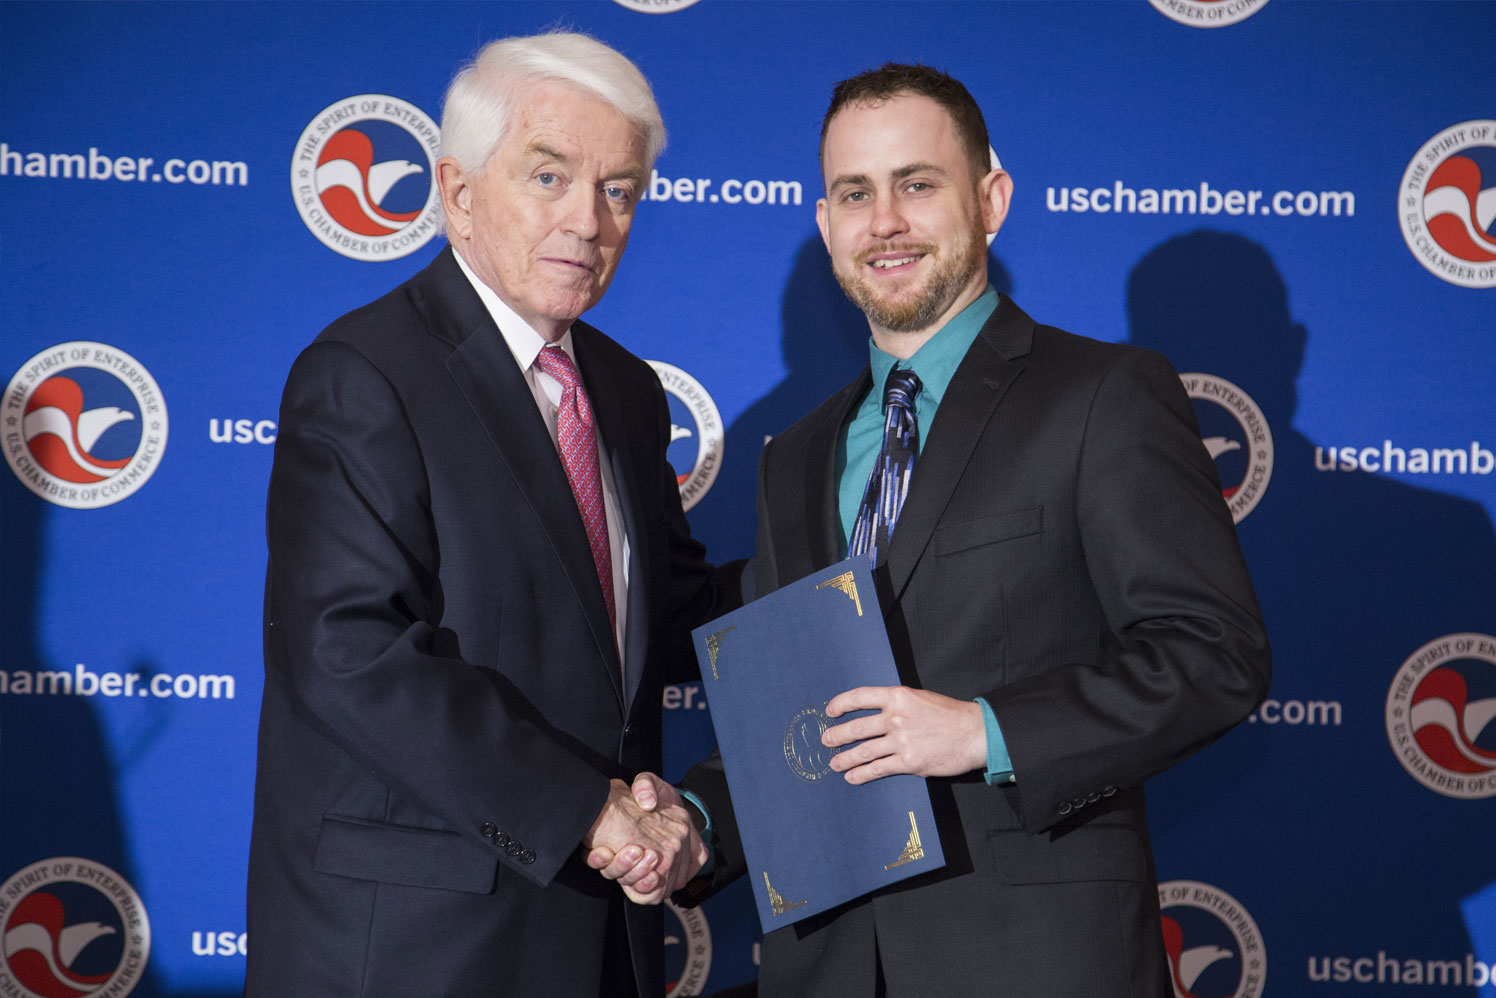 Co-Founder-Matej-Harangozo-at-the-2016-U.S.-Chamber-Small-Business-Summit